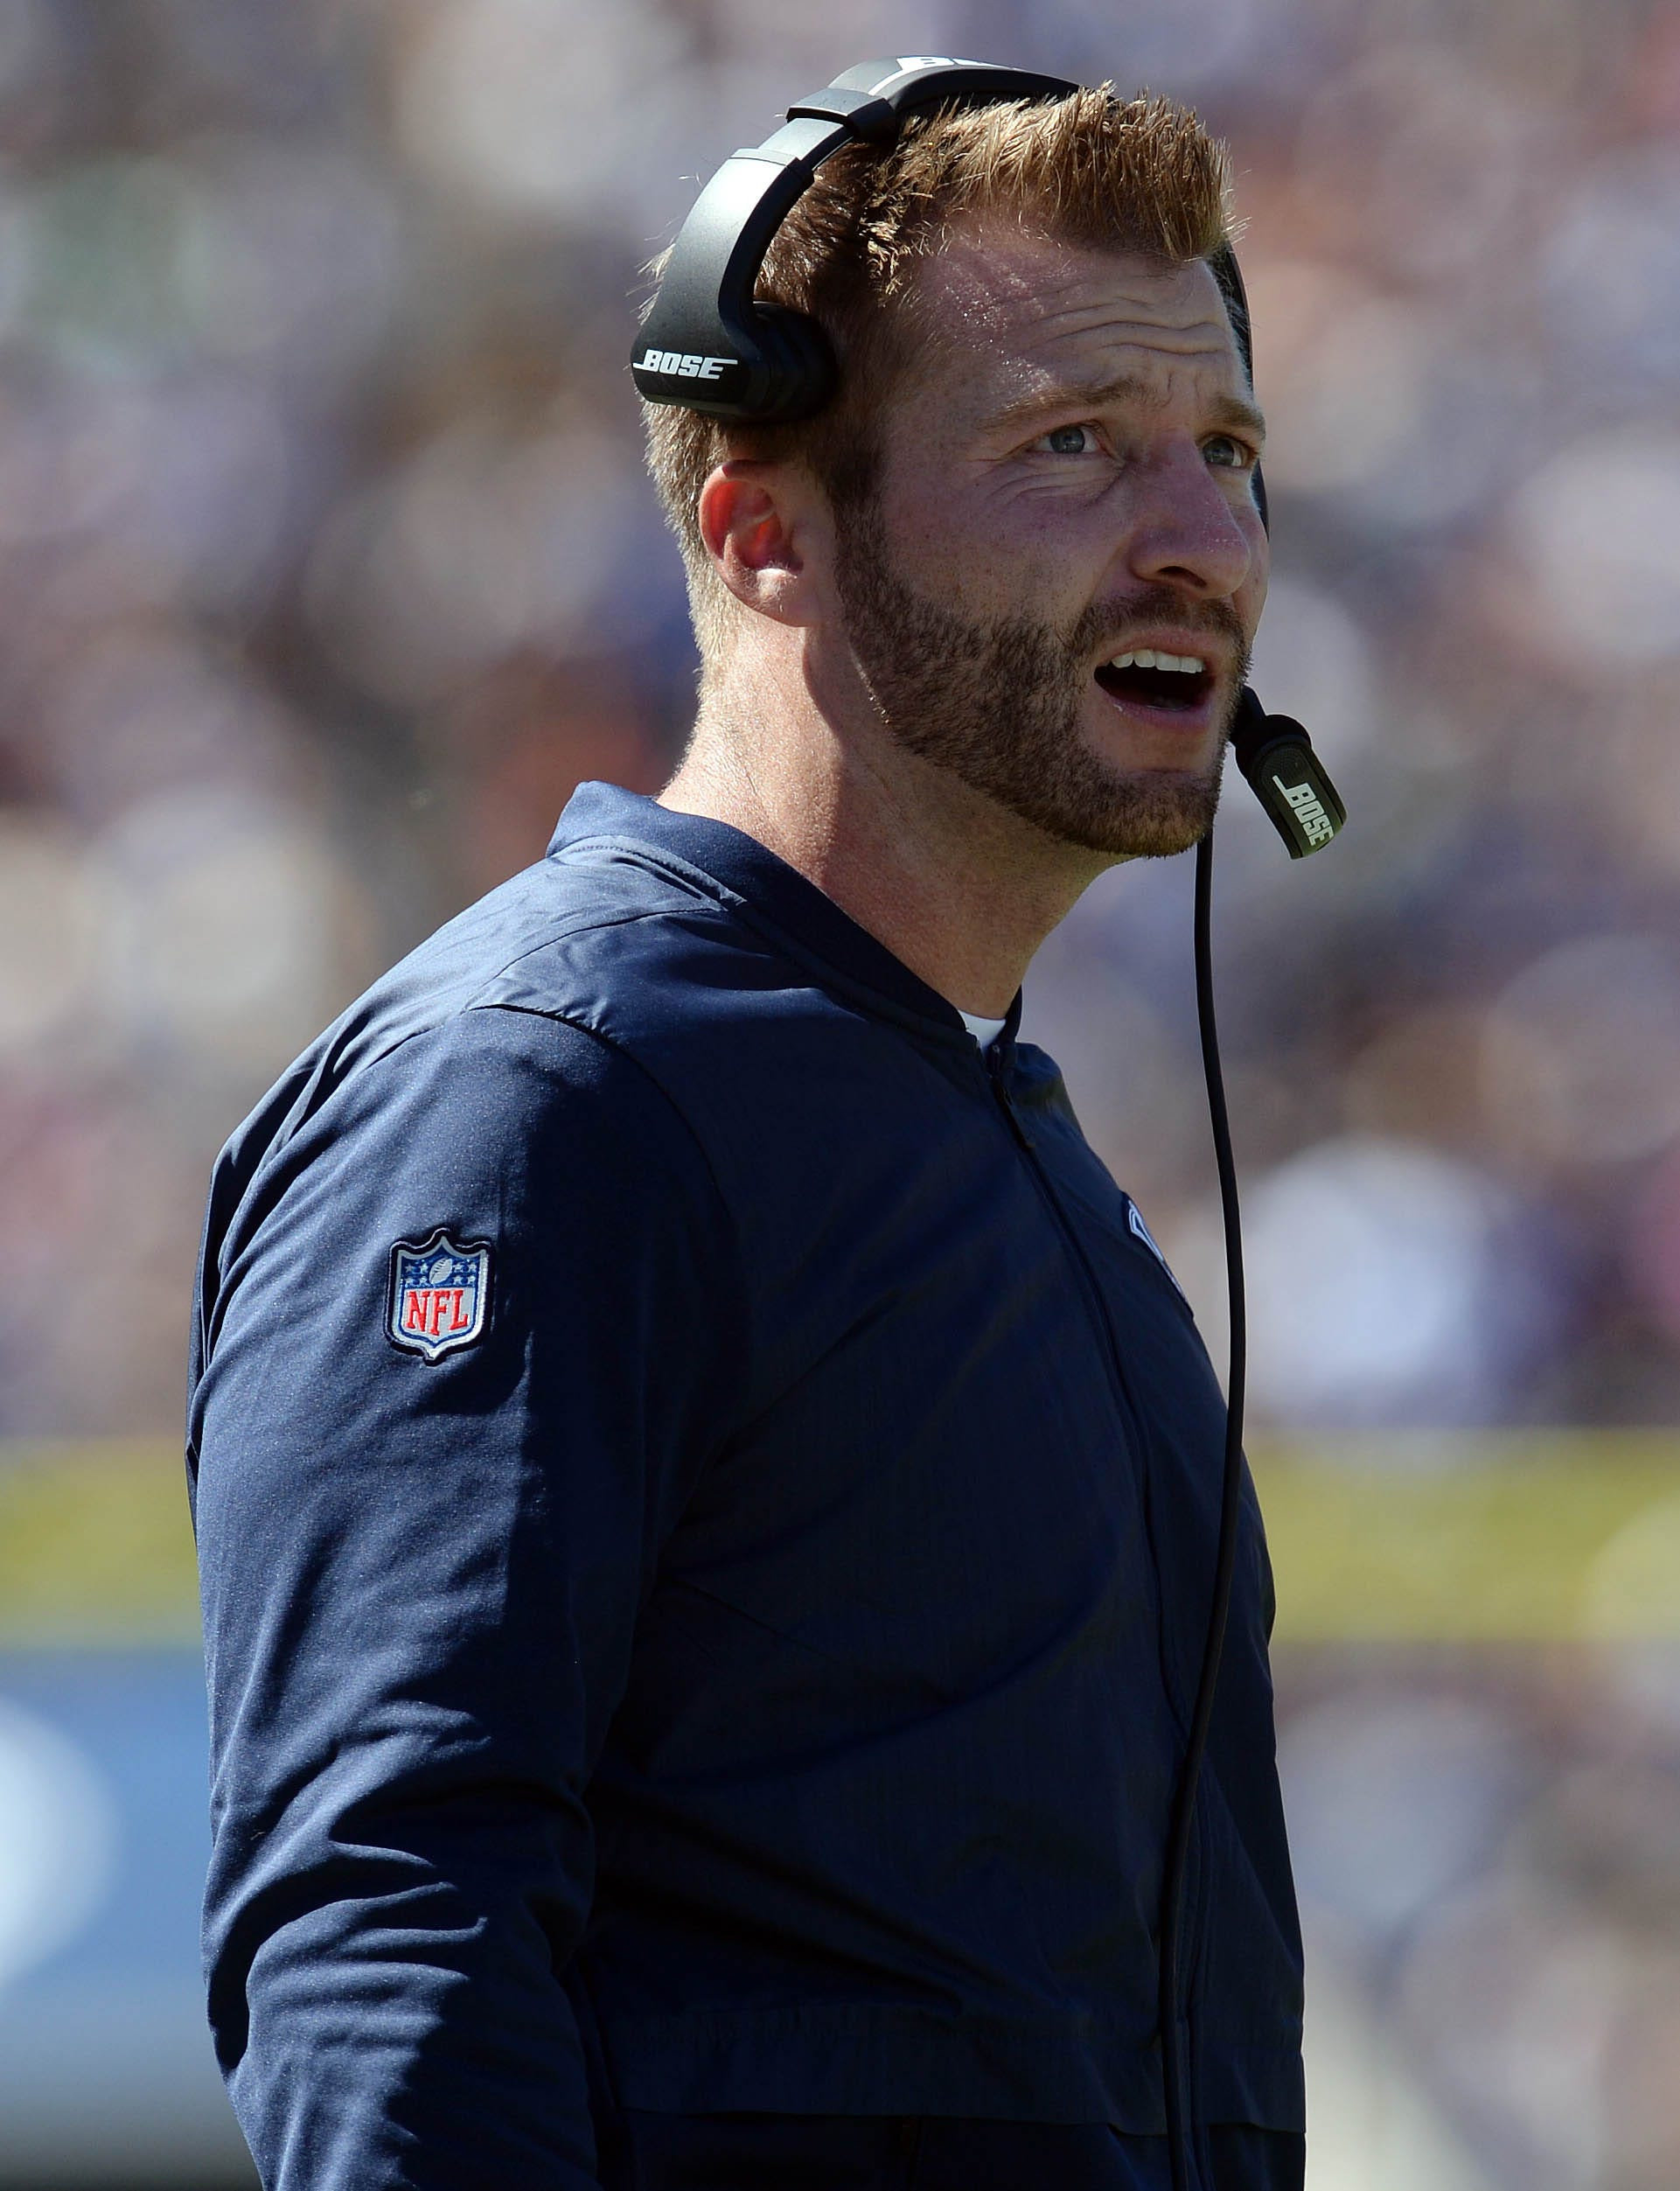 Sean McVay has the perfect role on the Rams for Kevin Durant